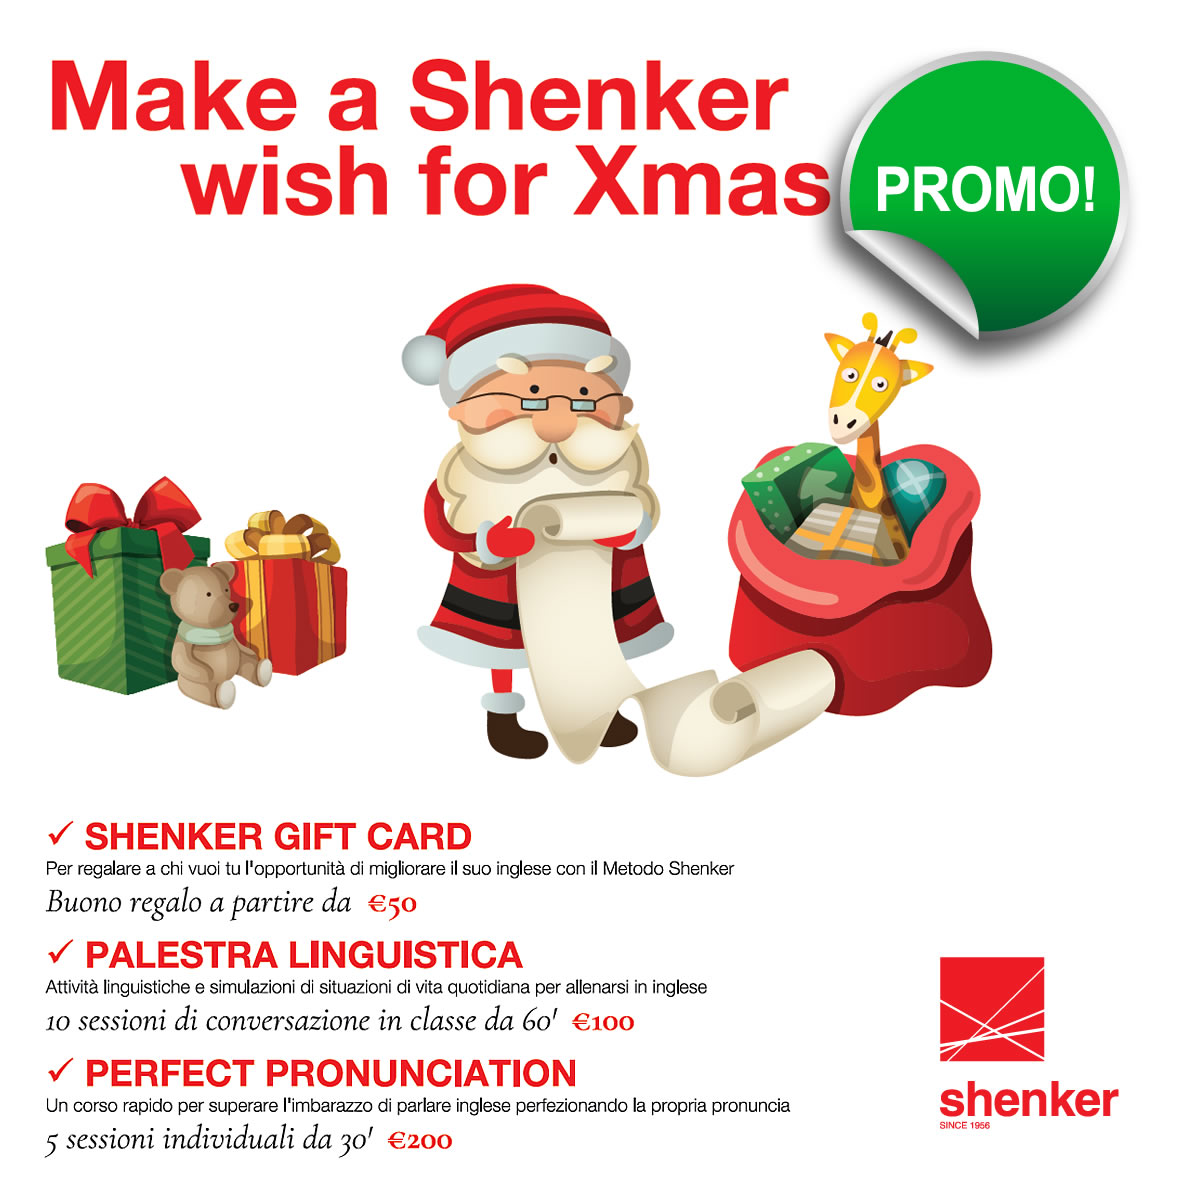 Make a Shenker Wish for Xmas